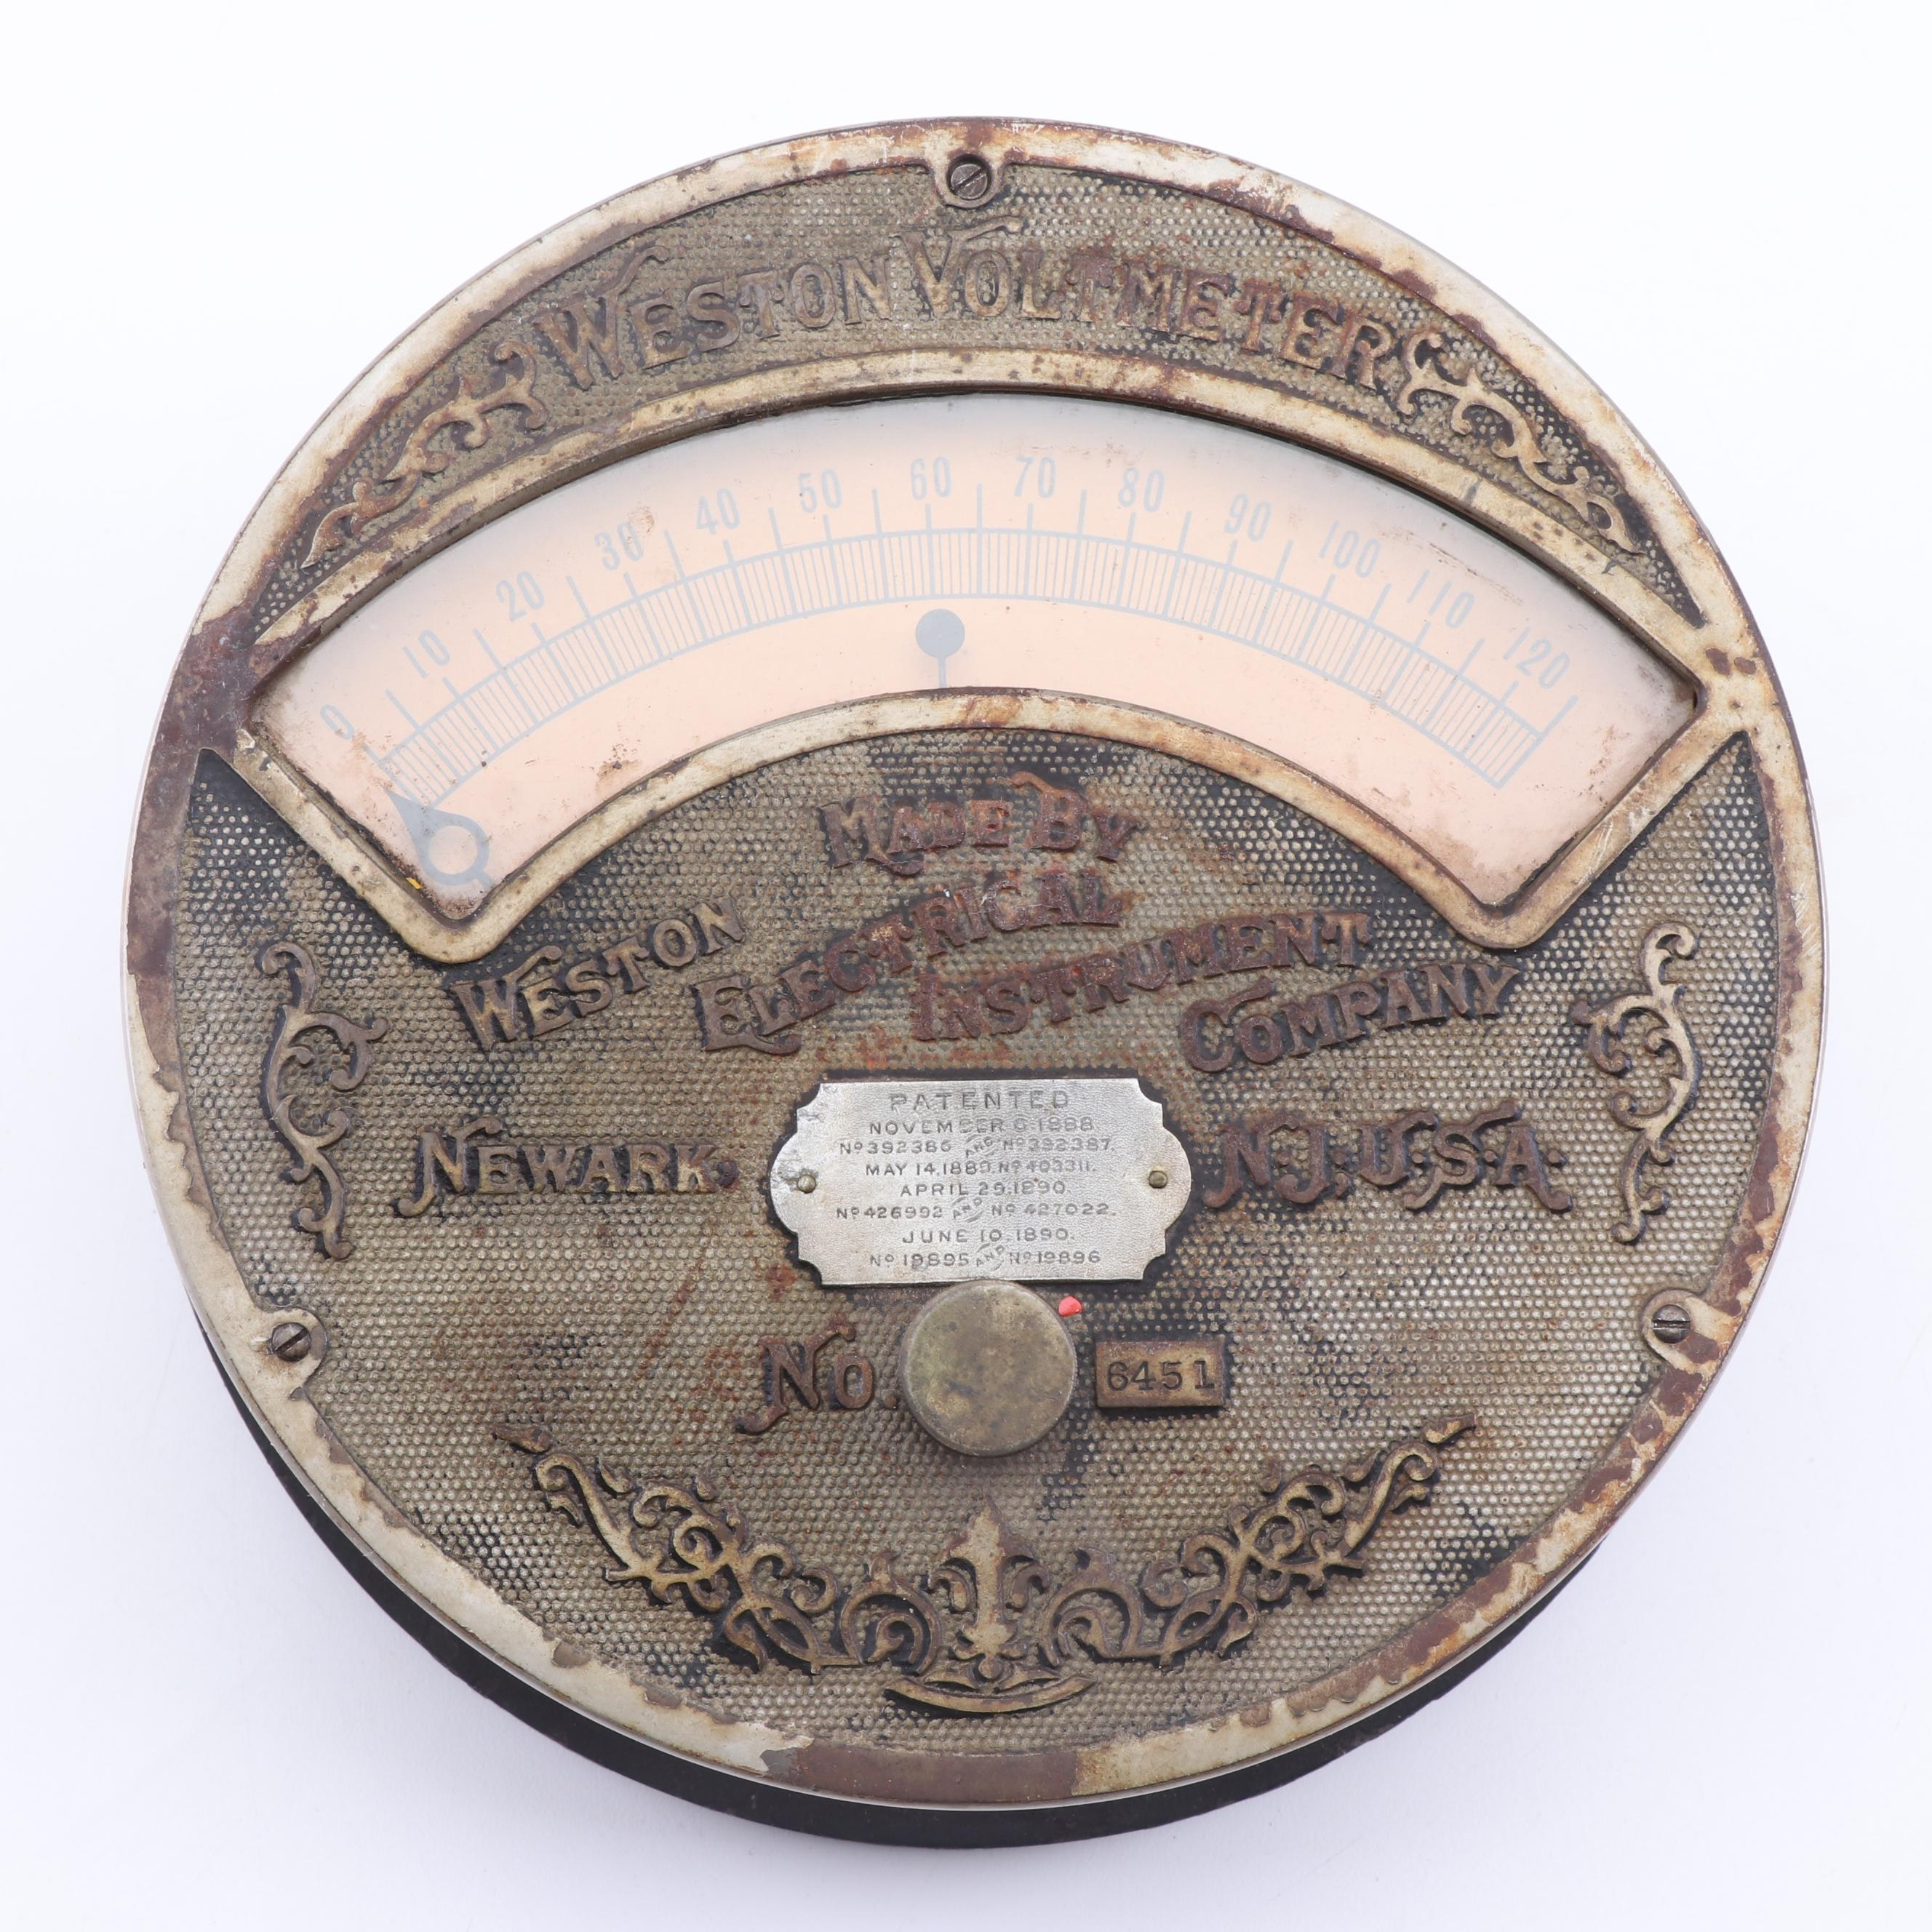 Weston Electrical Instrument Company Voltmeter, Late 19th/Early 20th Century